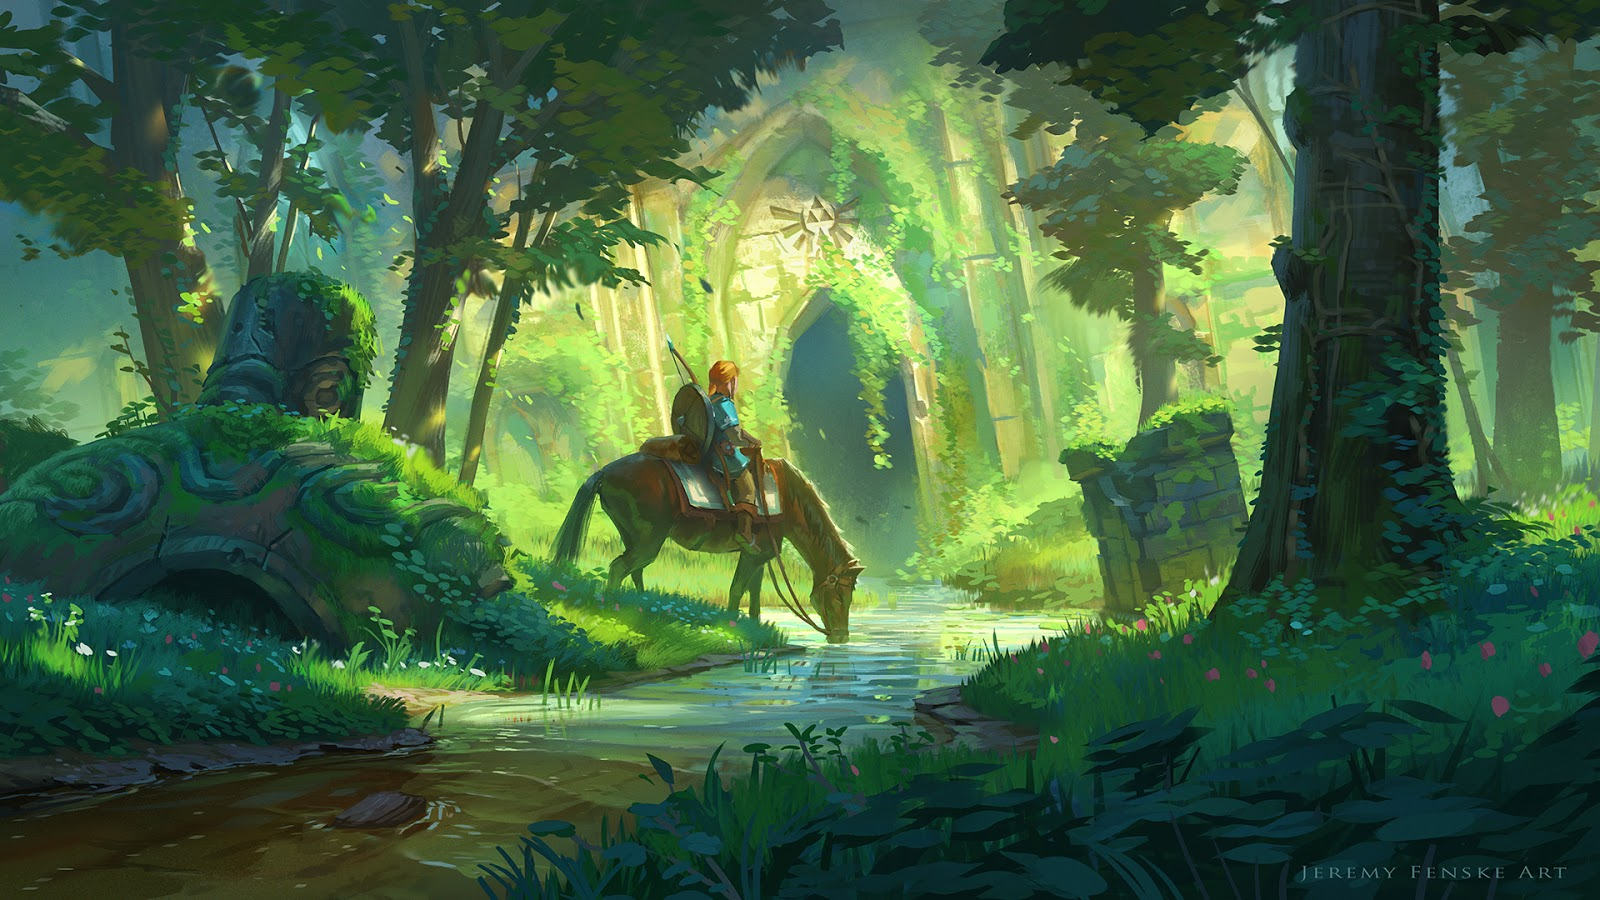 Breath Of The Wild Screensaver: The Legend Of Zelda Inspired Concept Art And Illustrations